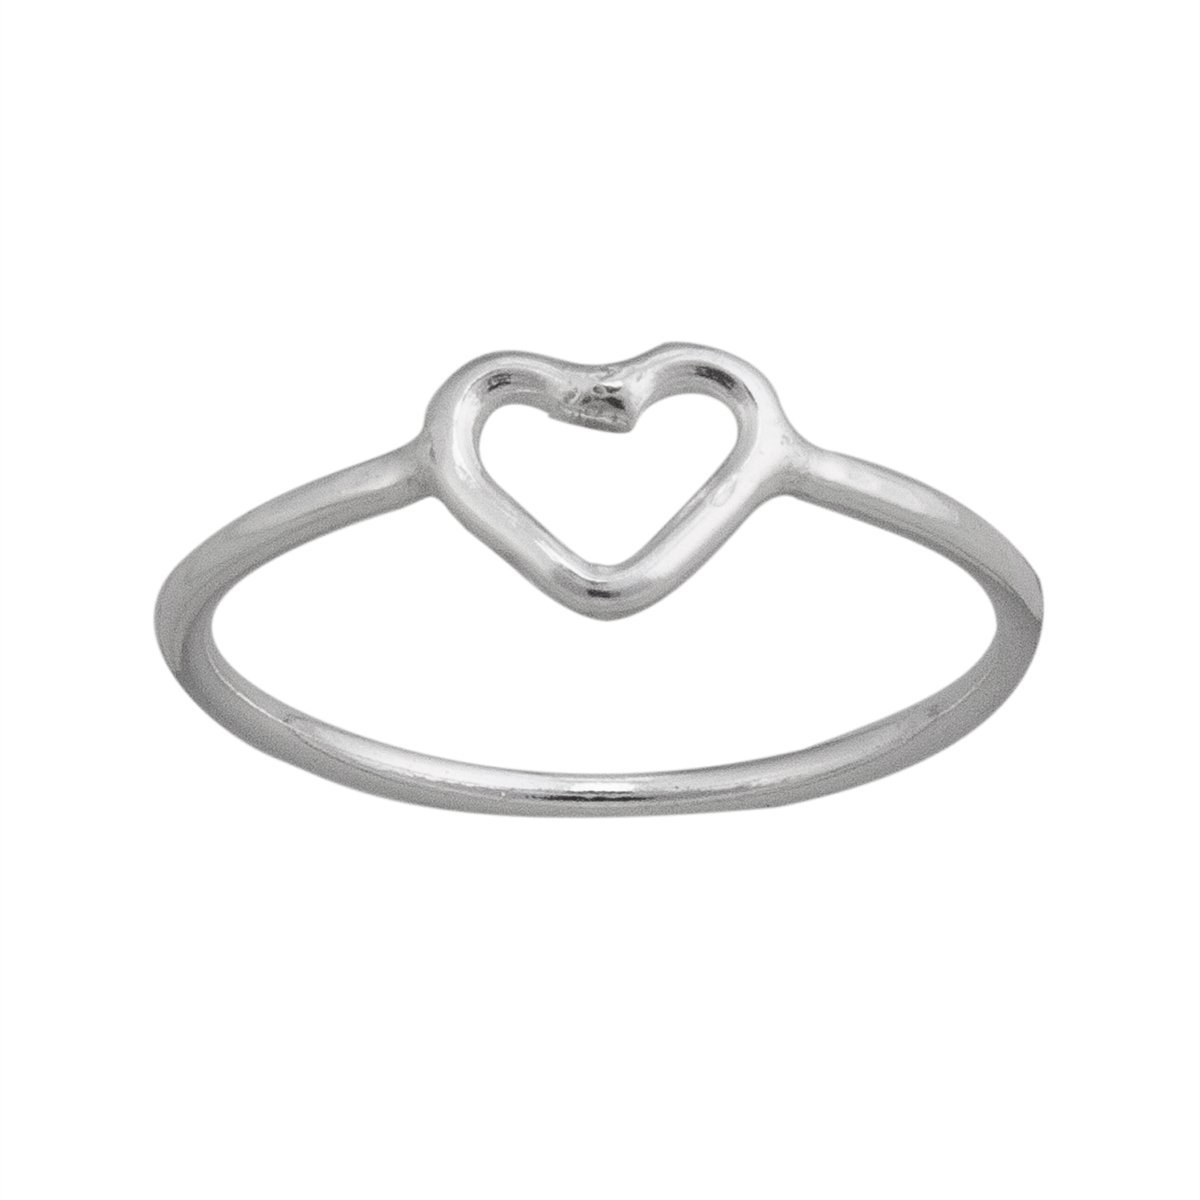 sterling-silver-amor-ring - 1 - Charles Albert Inc